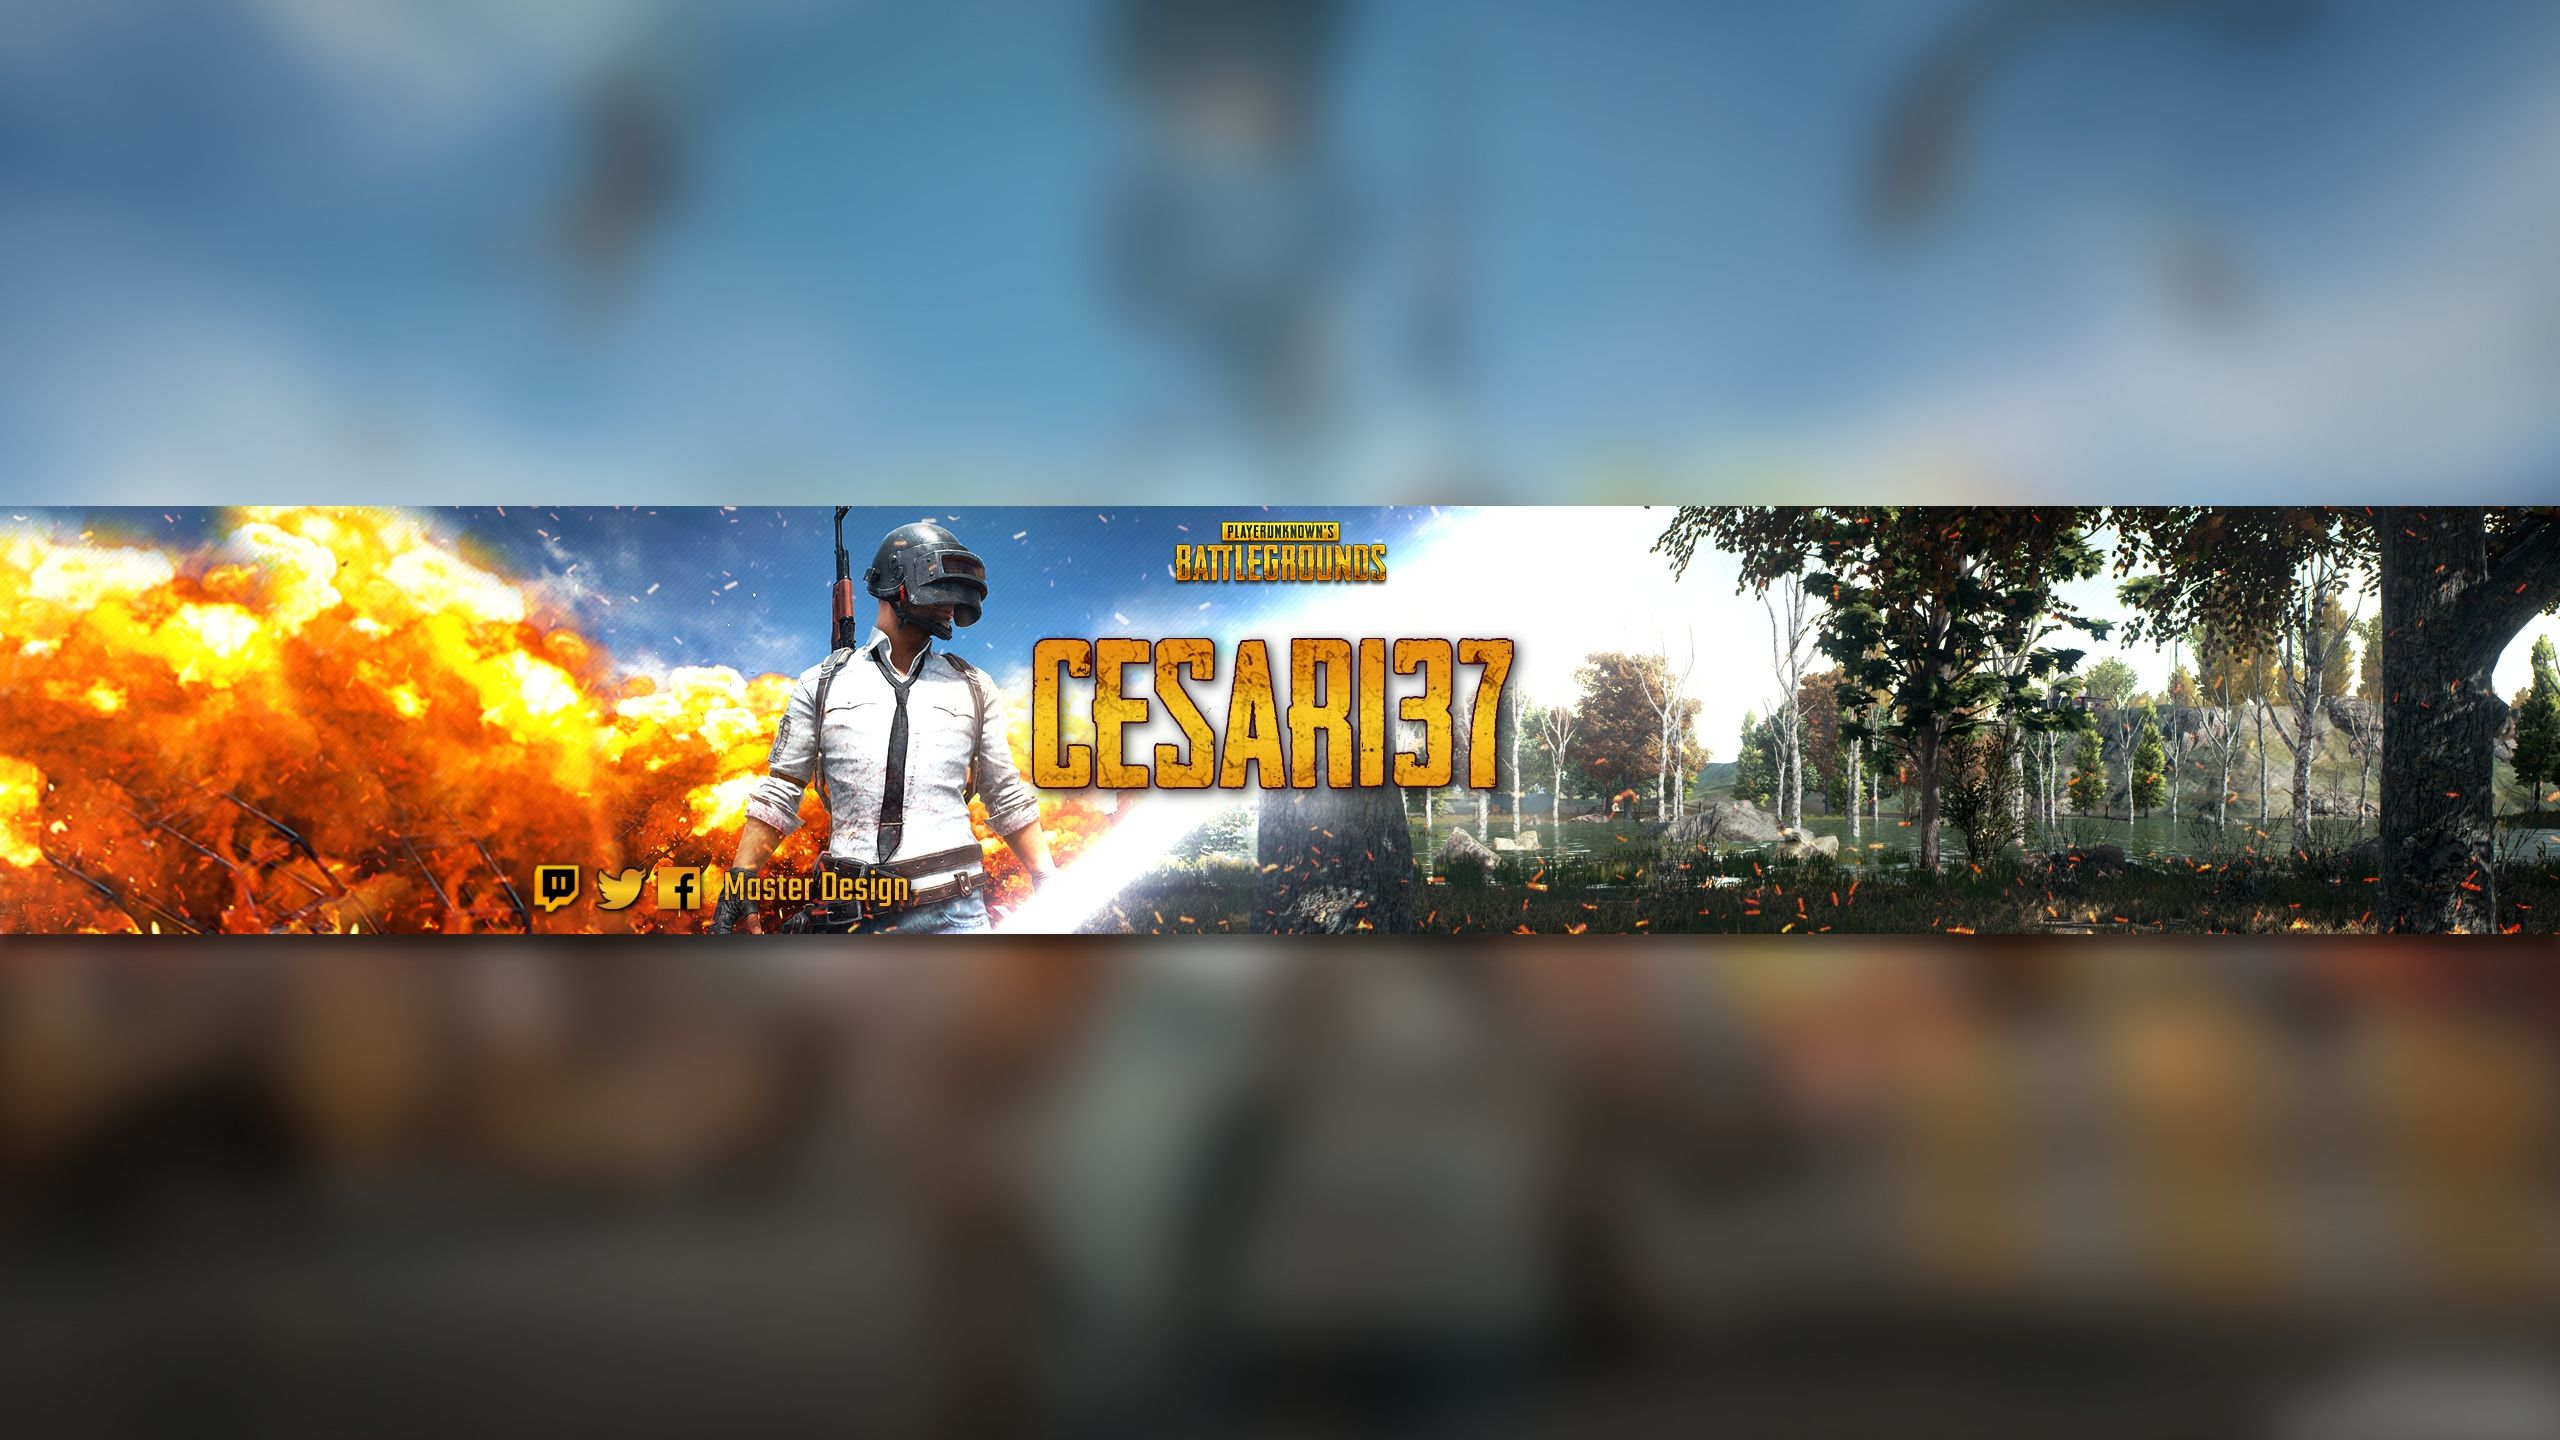 In just a few moments. Create A Youtube Banner Game Of Pubg Cool Youtube Banners Youtube Banner Backgrounds Youtube Banner Design